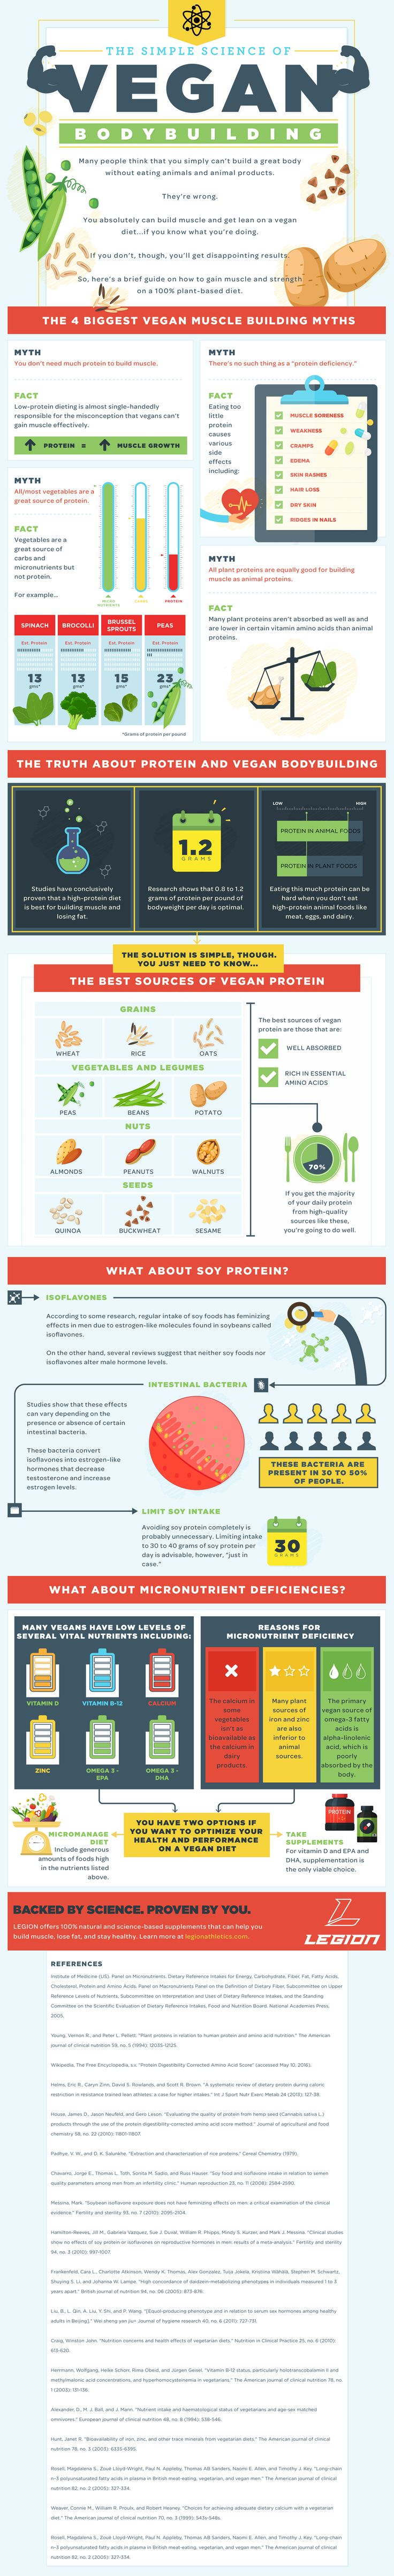 [INFOGRAPHIC] The Simple Science of Vegan Bodybuilding